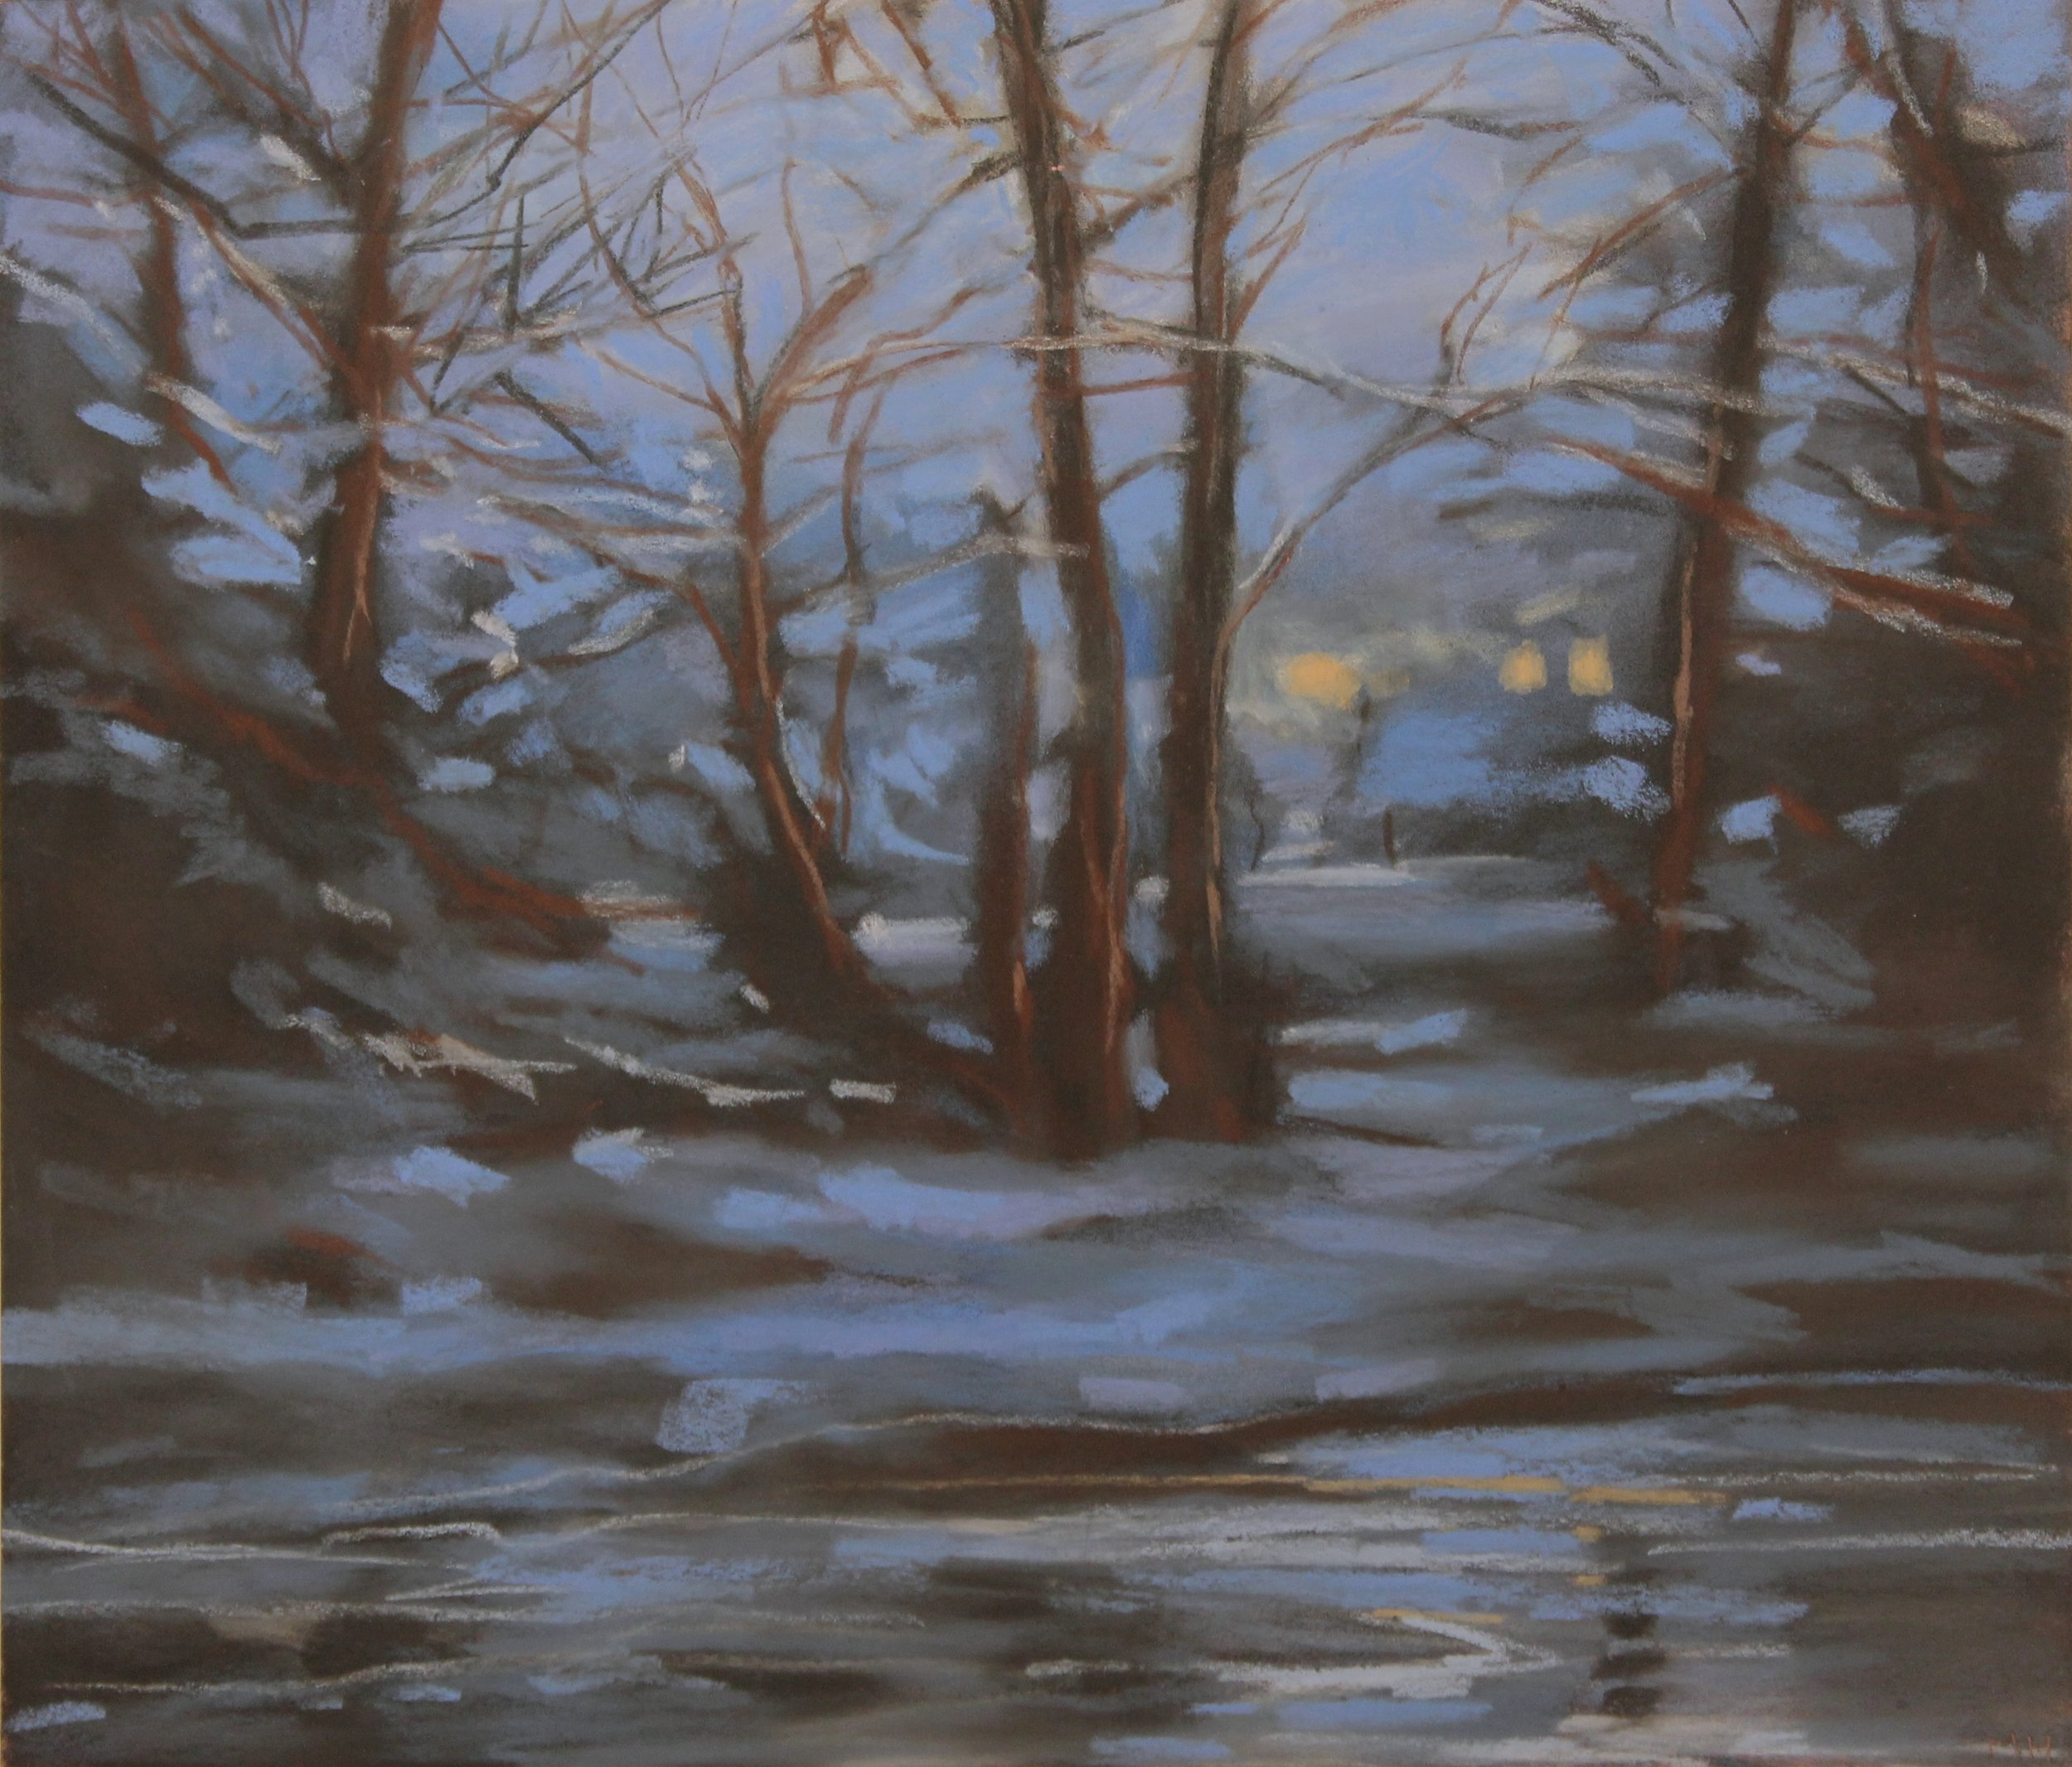 Home-In-Woods_Pastel on Copper_14x12.jpg